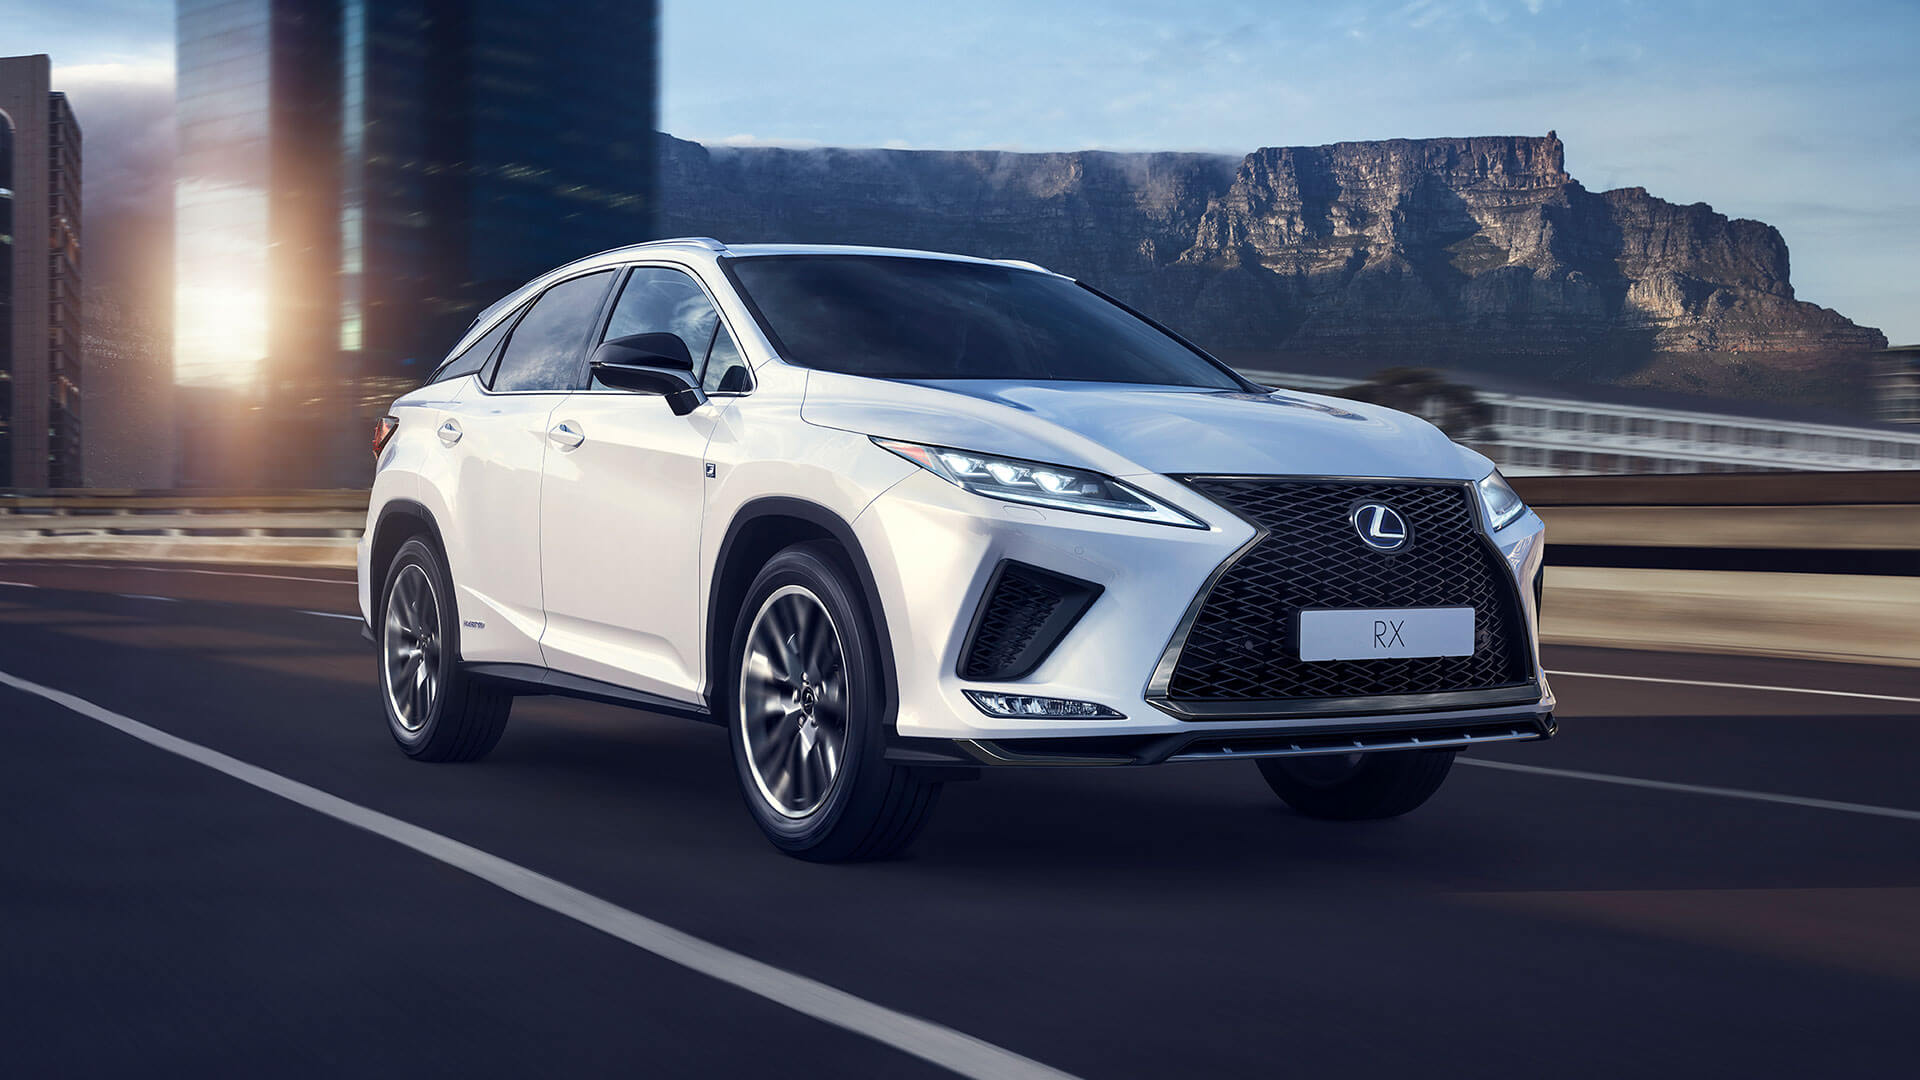 2019 lexus model names rx